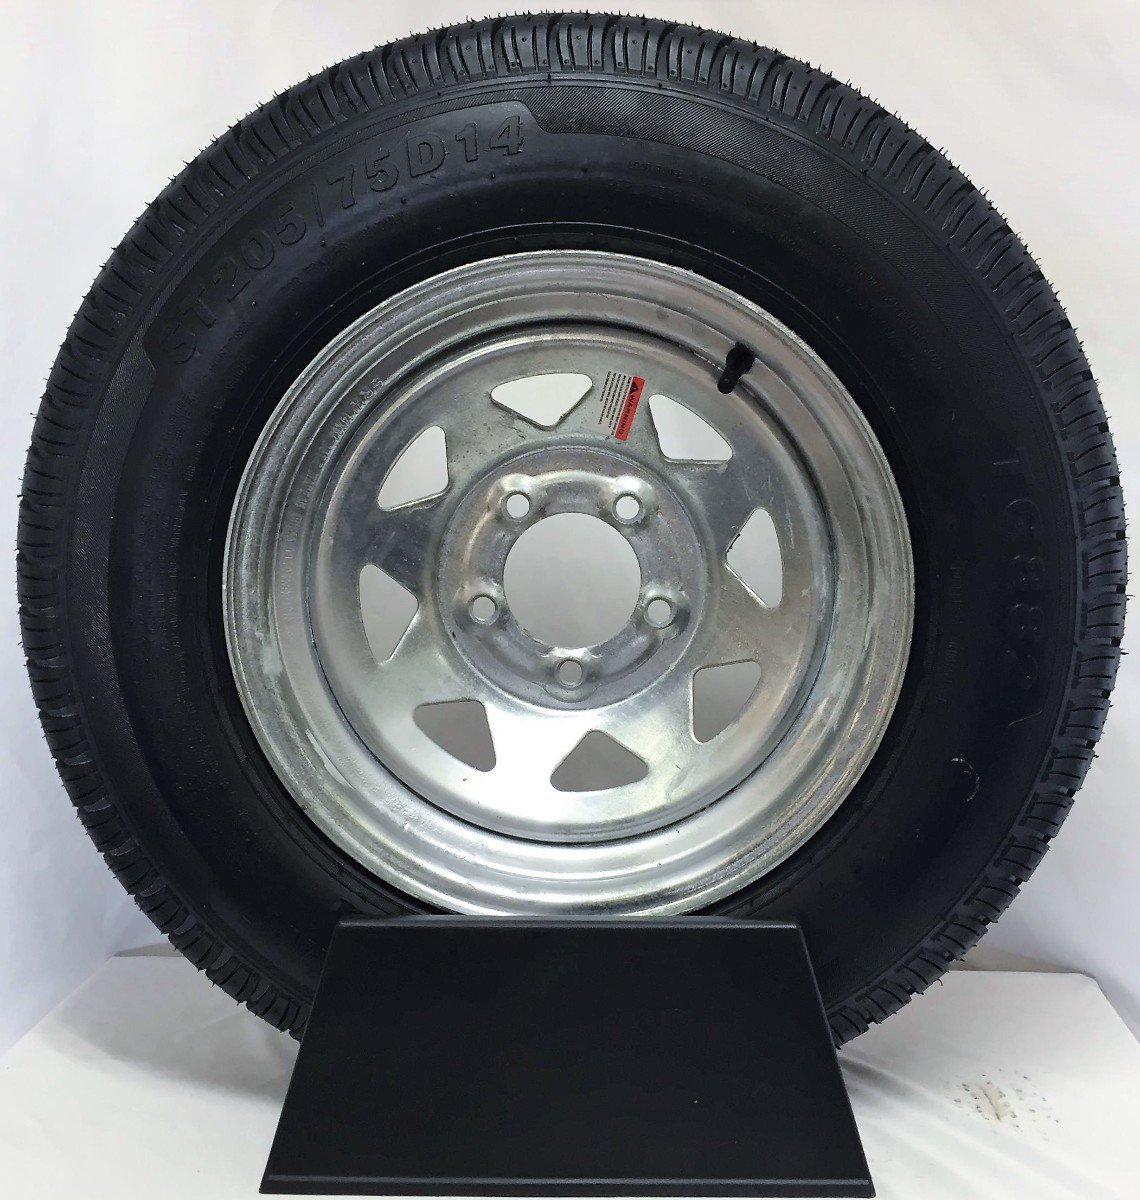 Qd 712 Trailer Tires 4 80 8 6 Ply Load C On White Rims 4 Lug 4